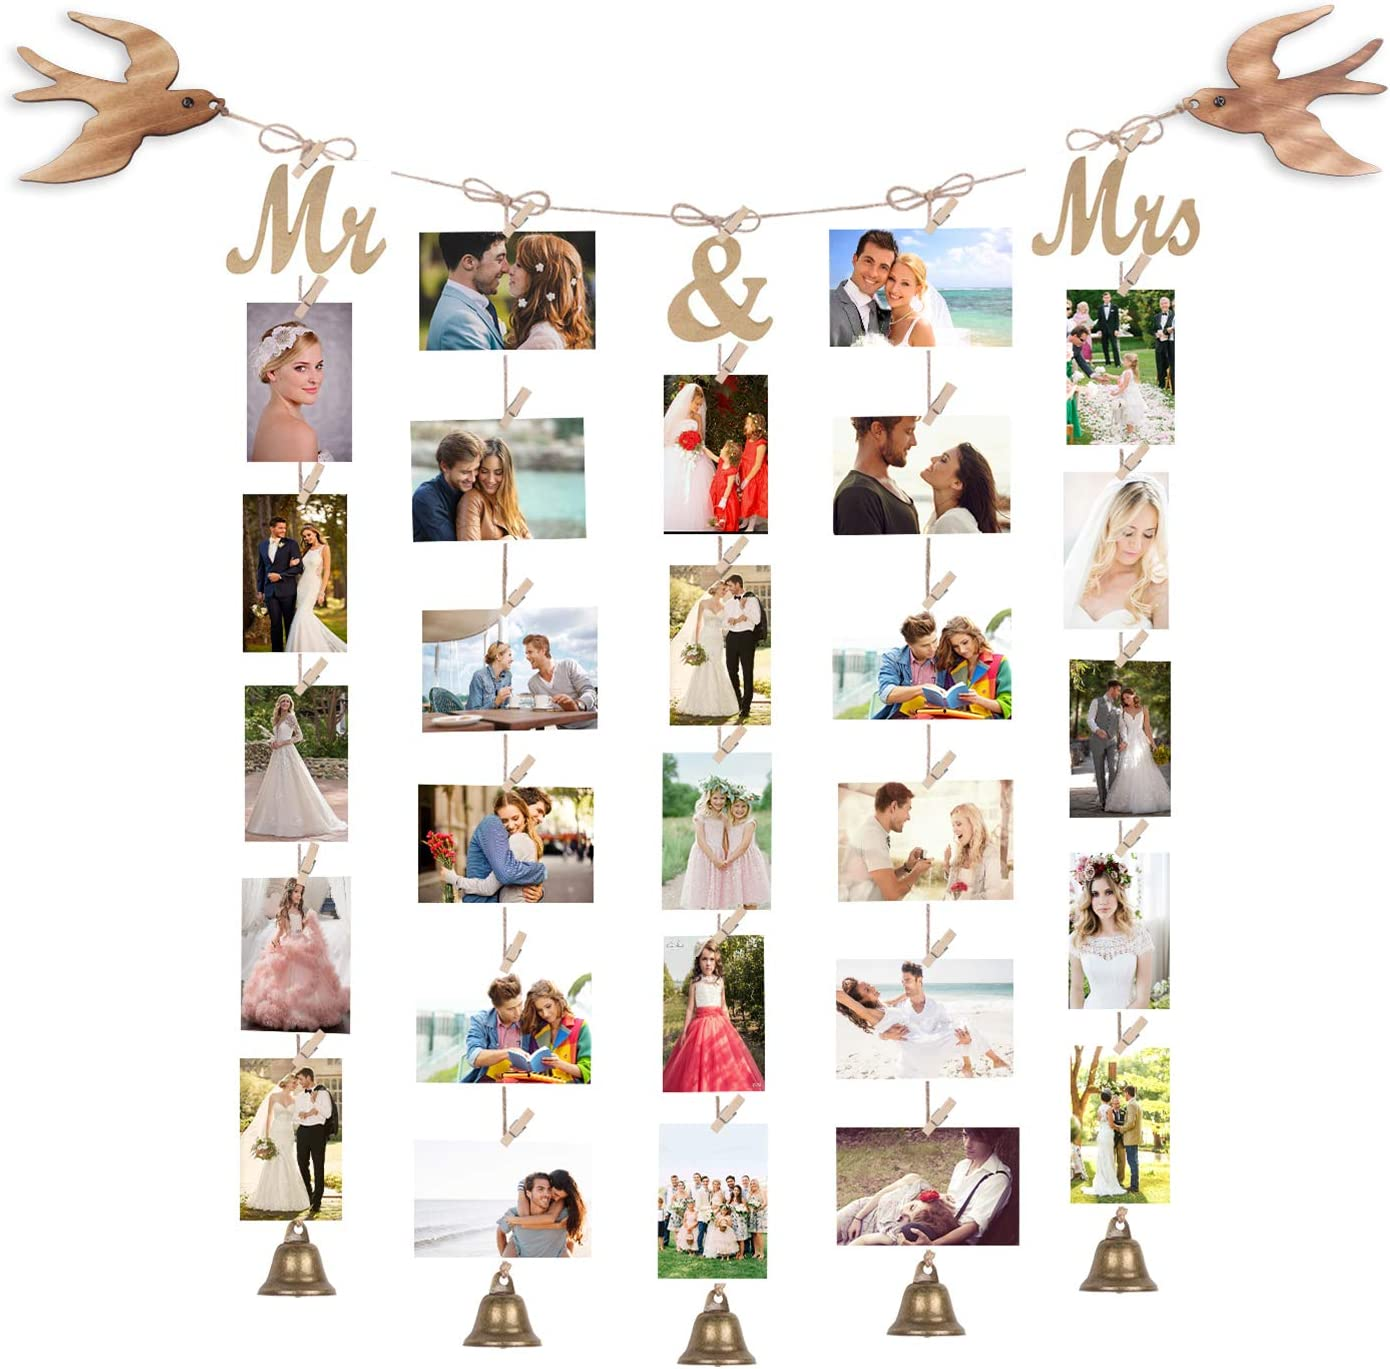 Emfogo Collage Picture Frames Hanging Photo Display for Wall Decor with 30 Clips and 5 Rustic Bronze Bell Multi Picture Frames for Home Office Room Decor